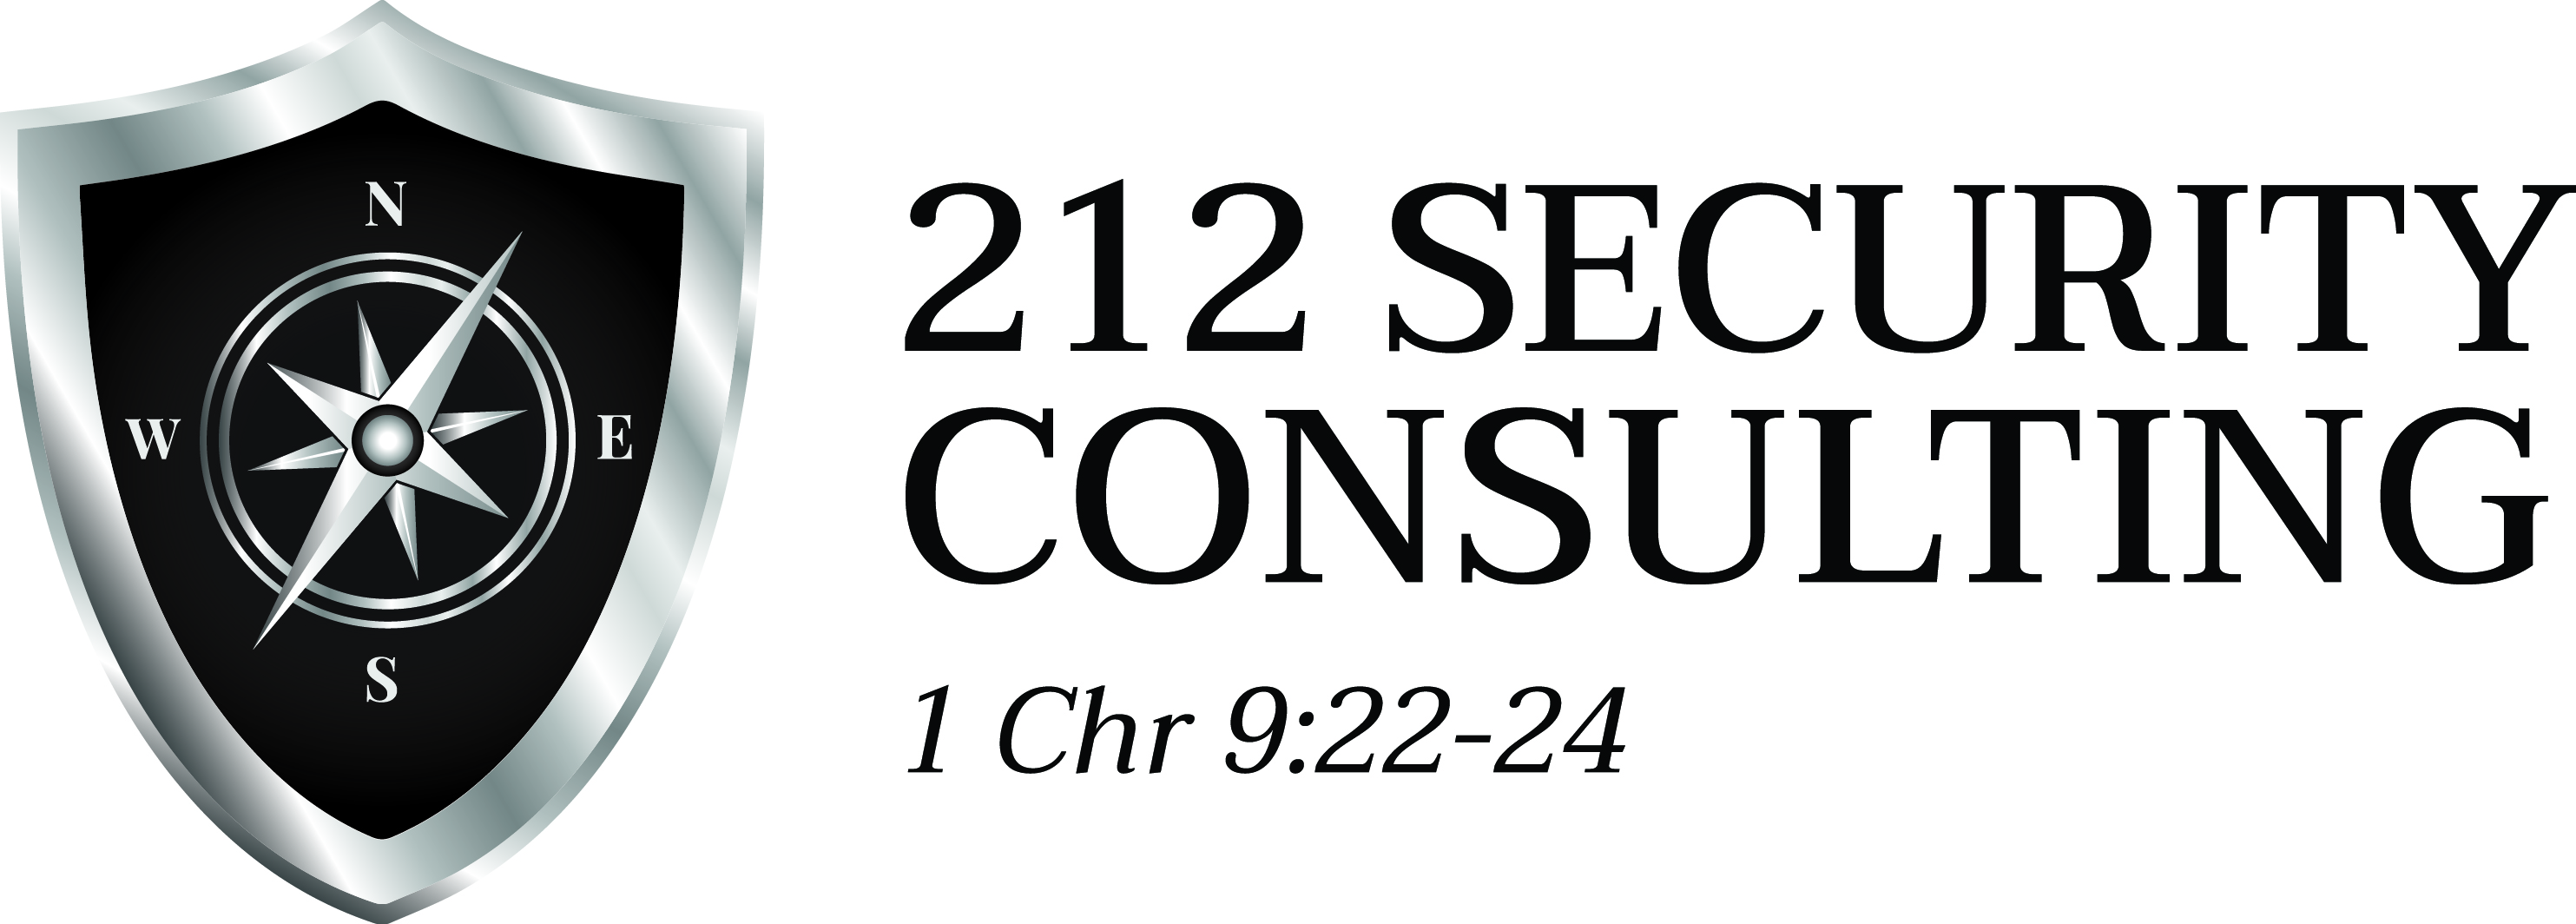 212 Security Consulting image